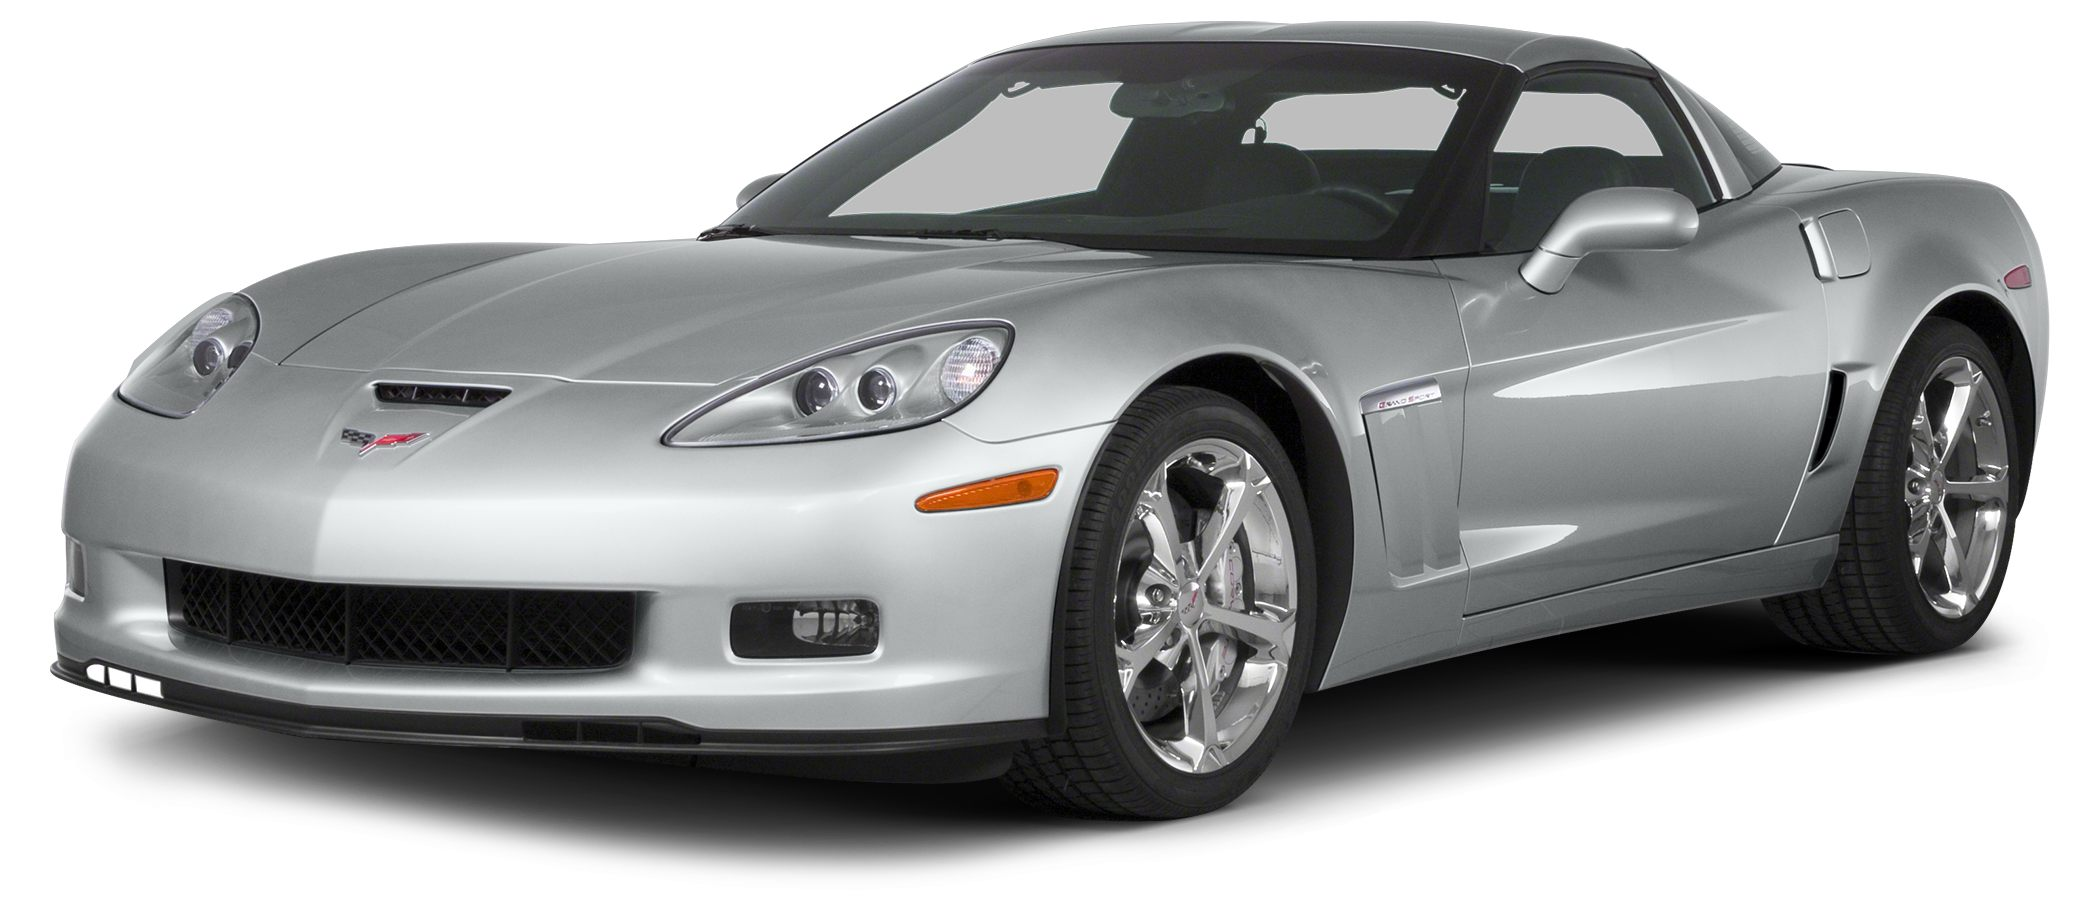 2013 Chevrolet Corvette Grand Sport Looking for a clean well-cared for 2013 Chevrolet Corvette T